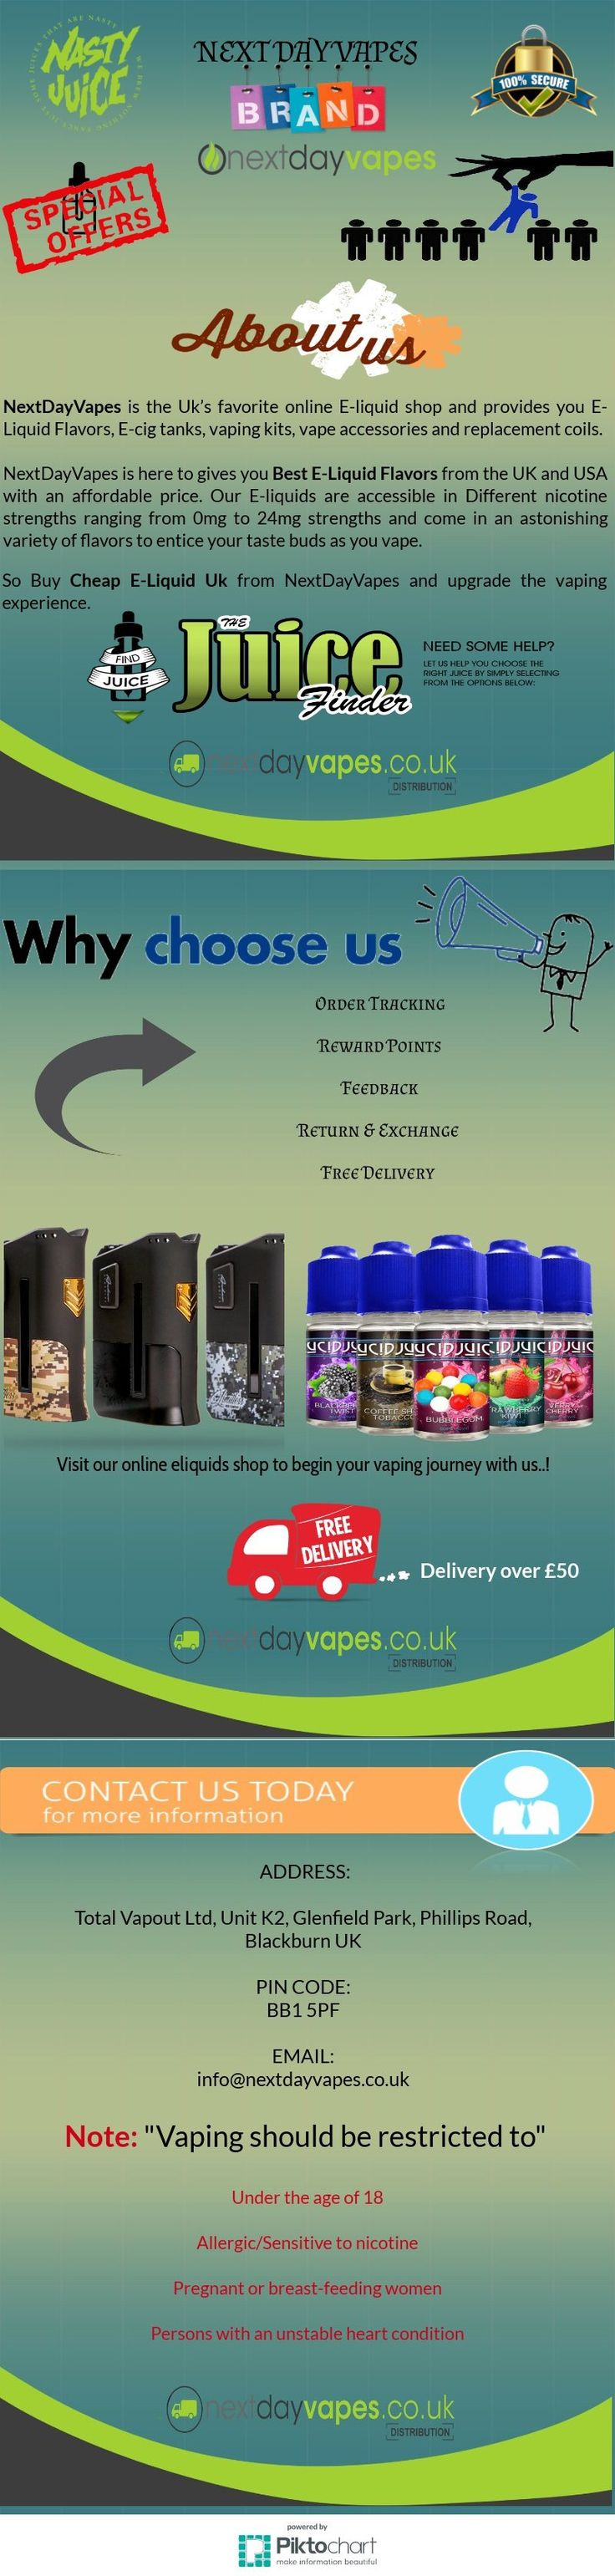 If you are looking for the #Cheap #ELiquid in the #Uk at rates you would love, then you can visit #NextDayVapes and find out so much!